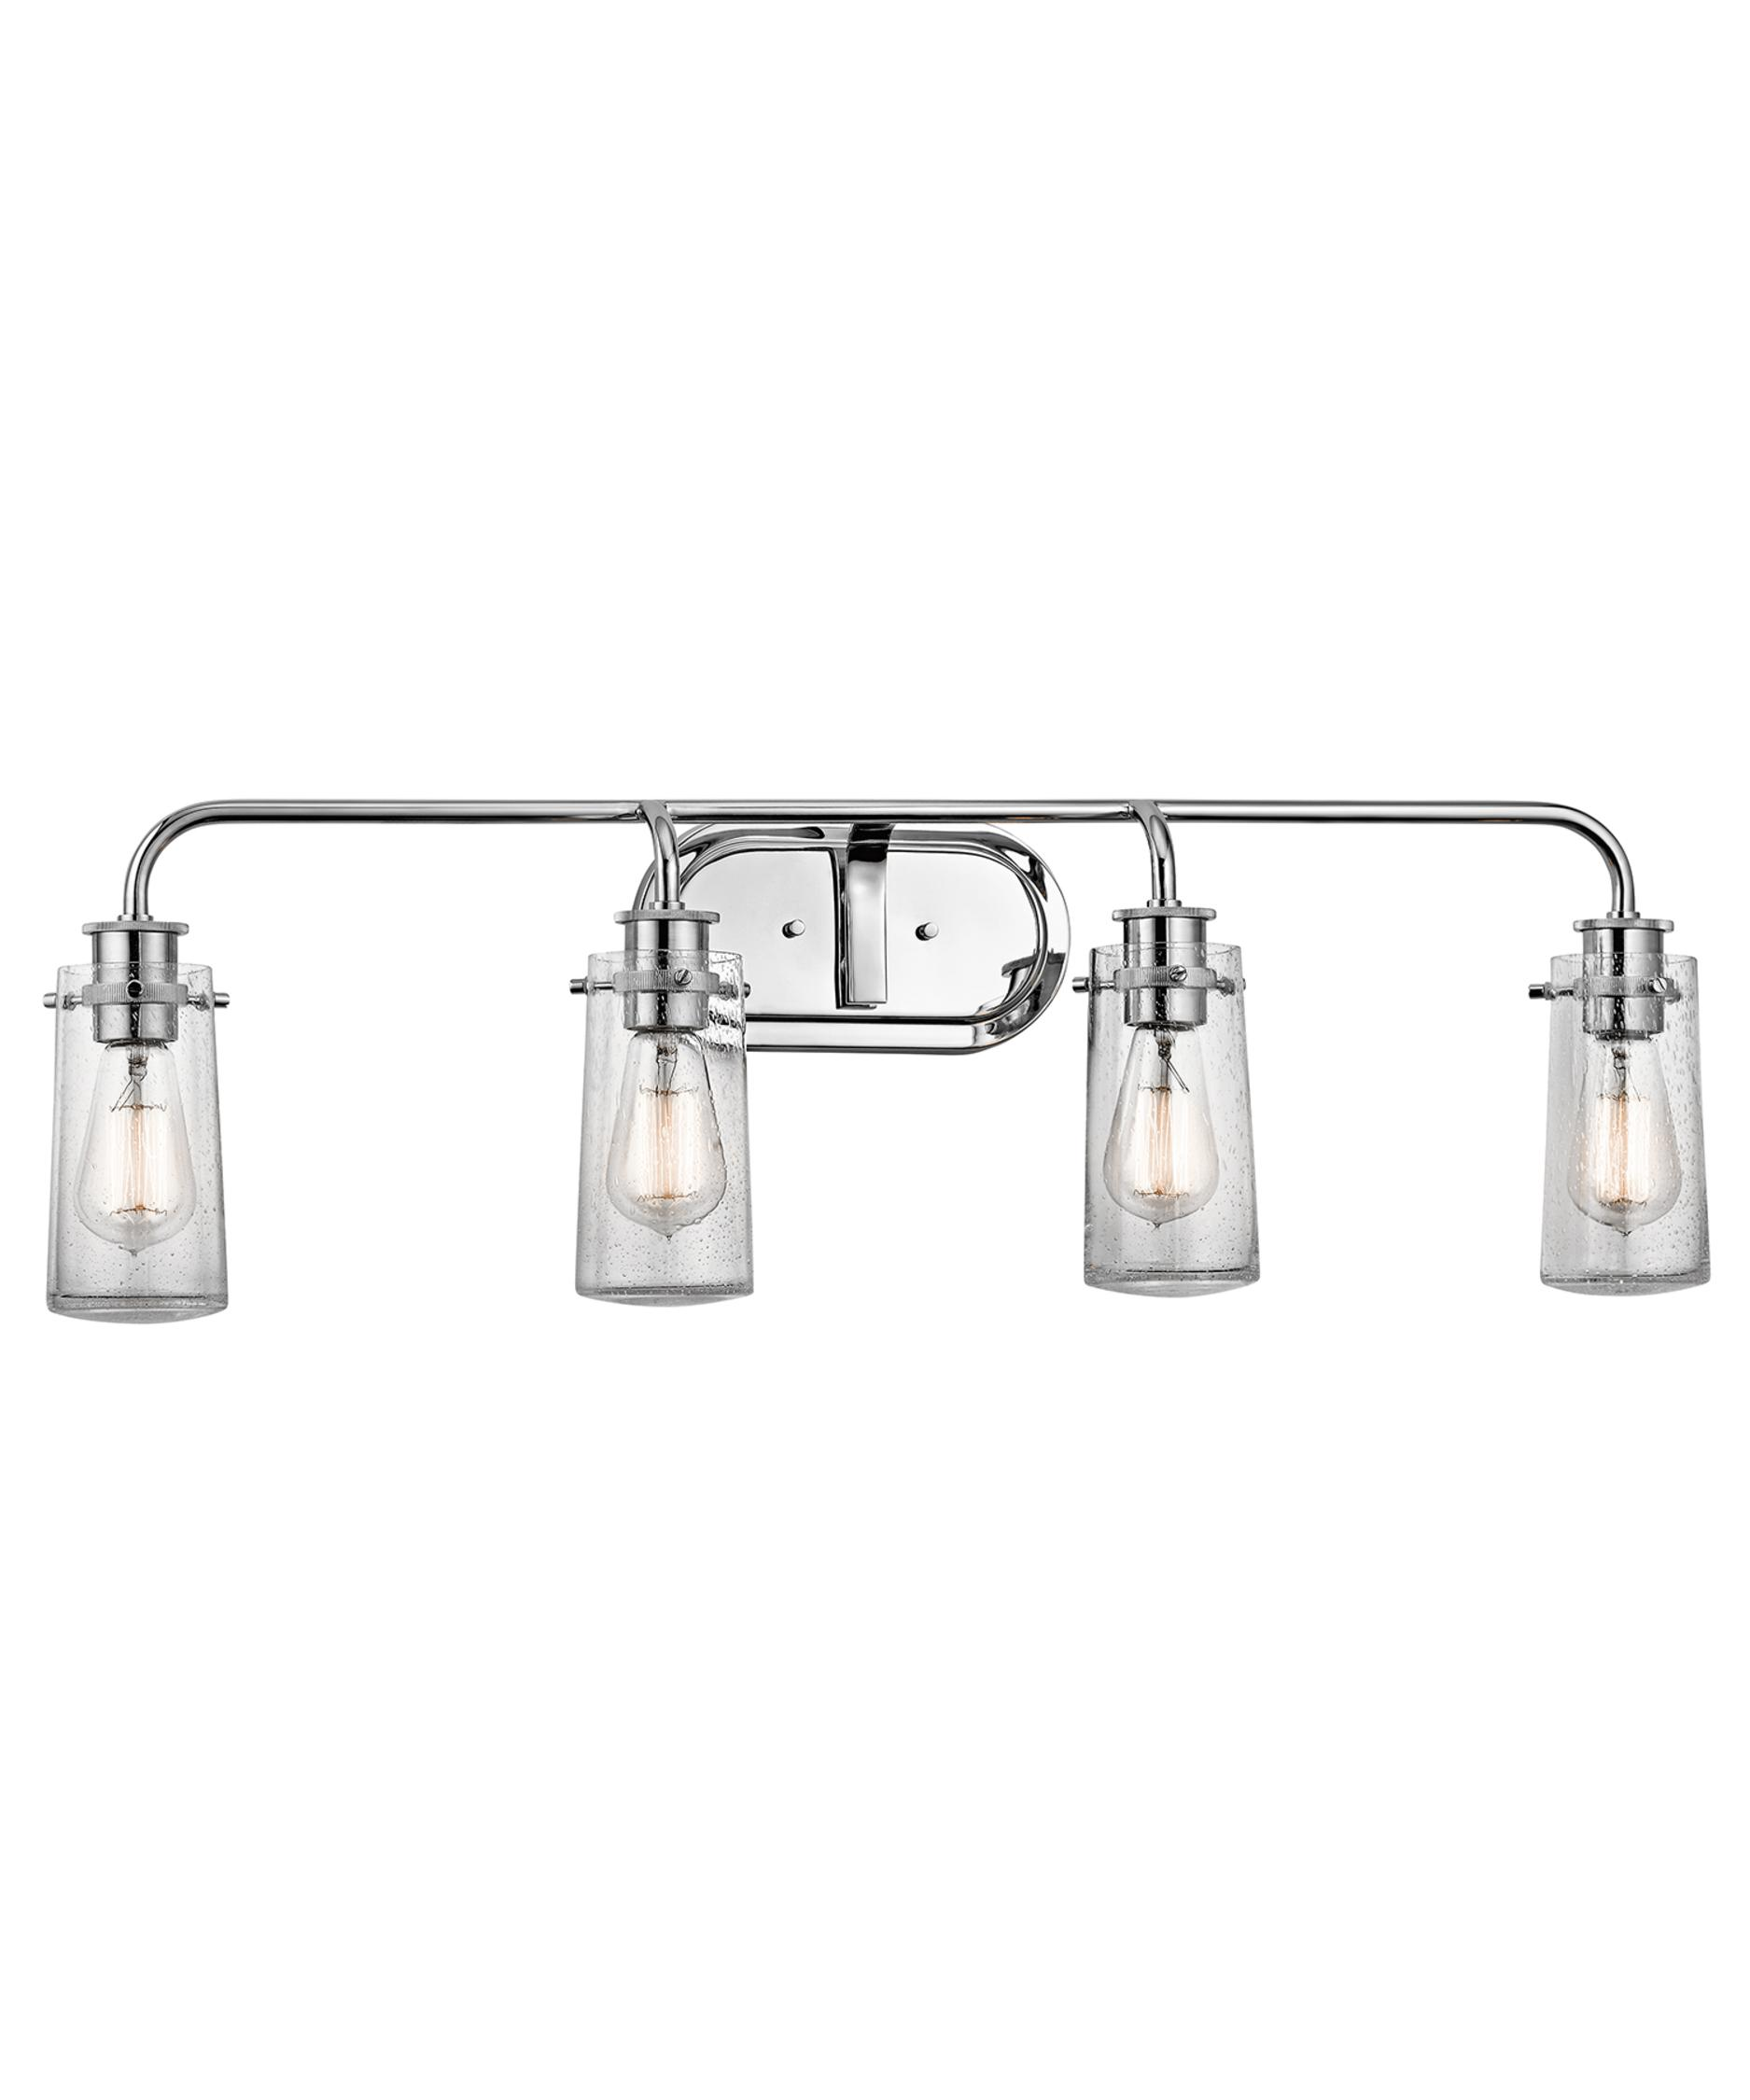 Braelyn 34 Inch Wide Bath Vanity Light